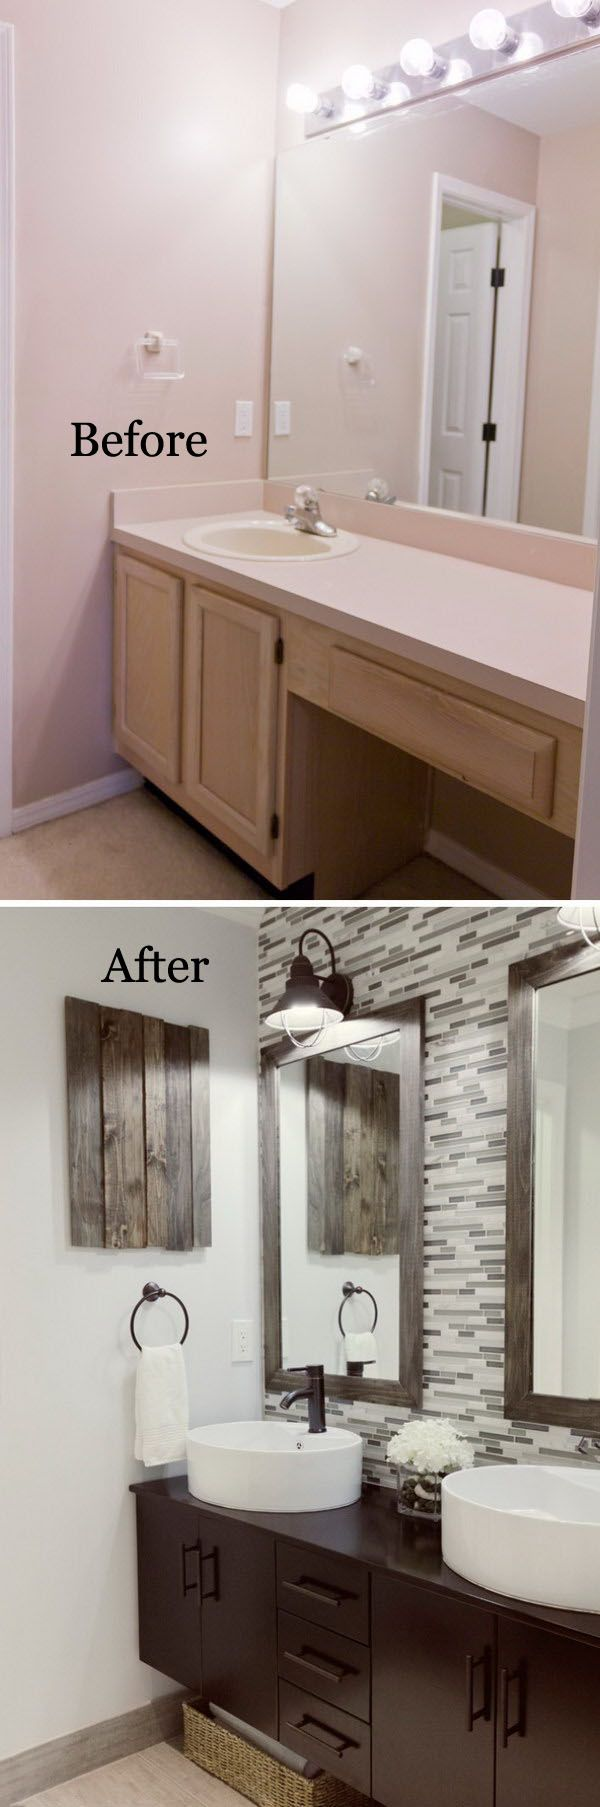 Best 20 Bath remodel ideas on Pinterest Master bath remodel